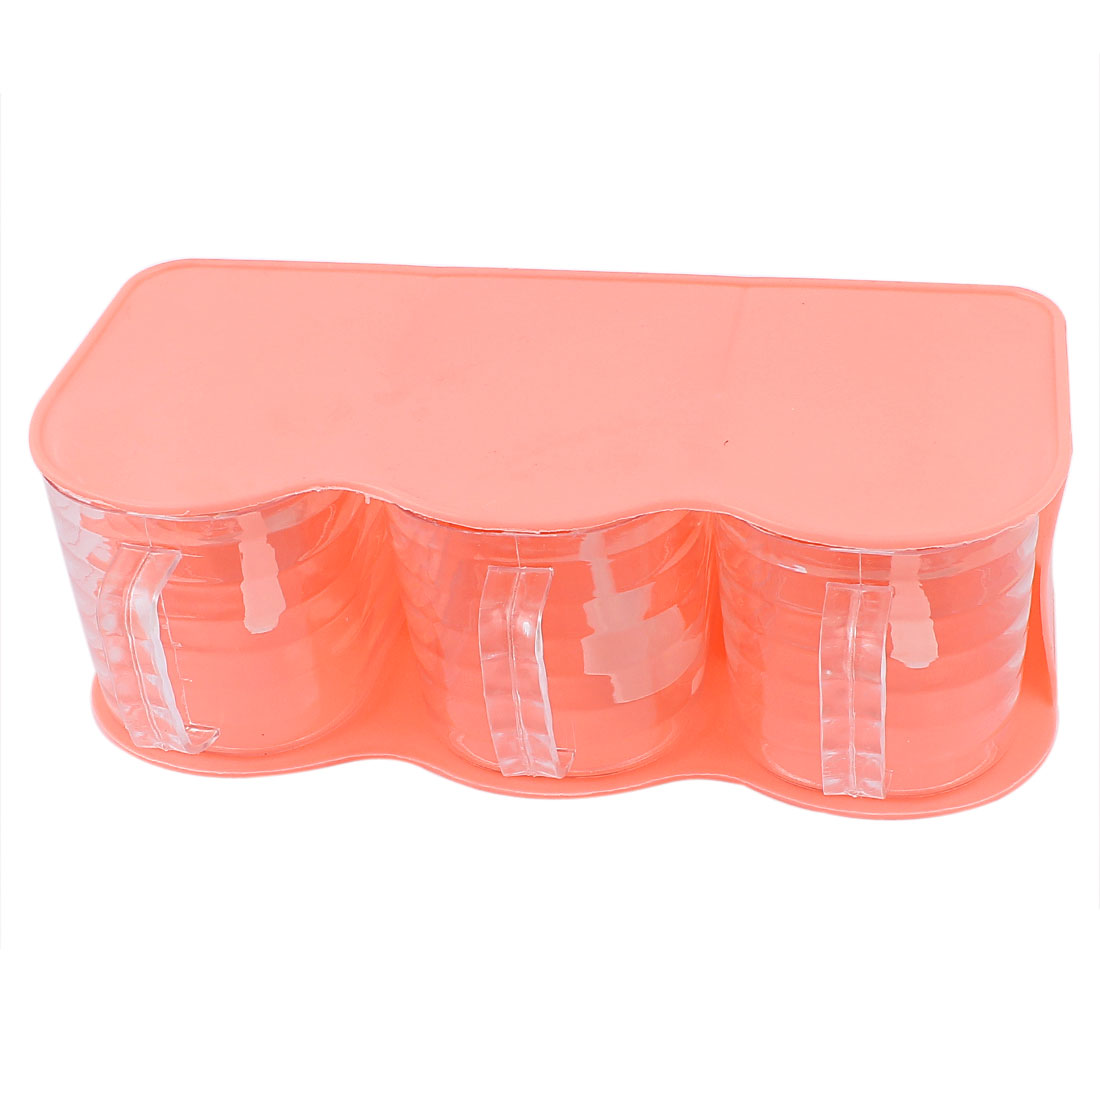 Plastic 3 Cells Spices Container Salt Pepper Condiment Dispenser Case Coral Pink